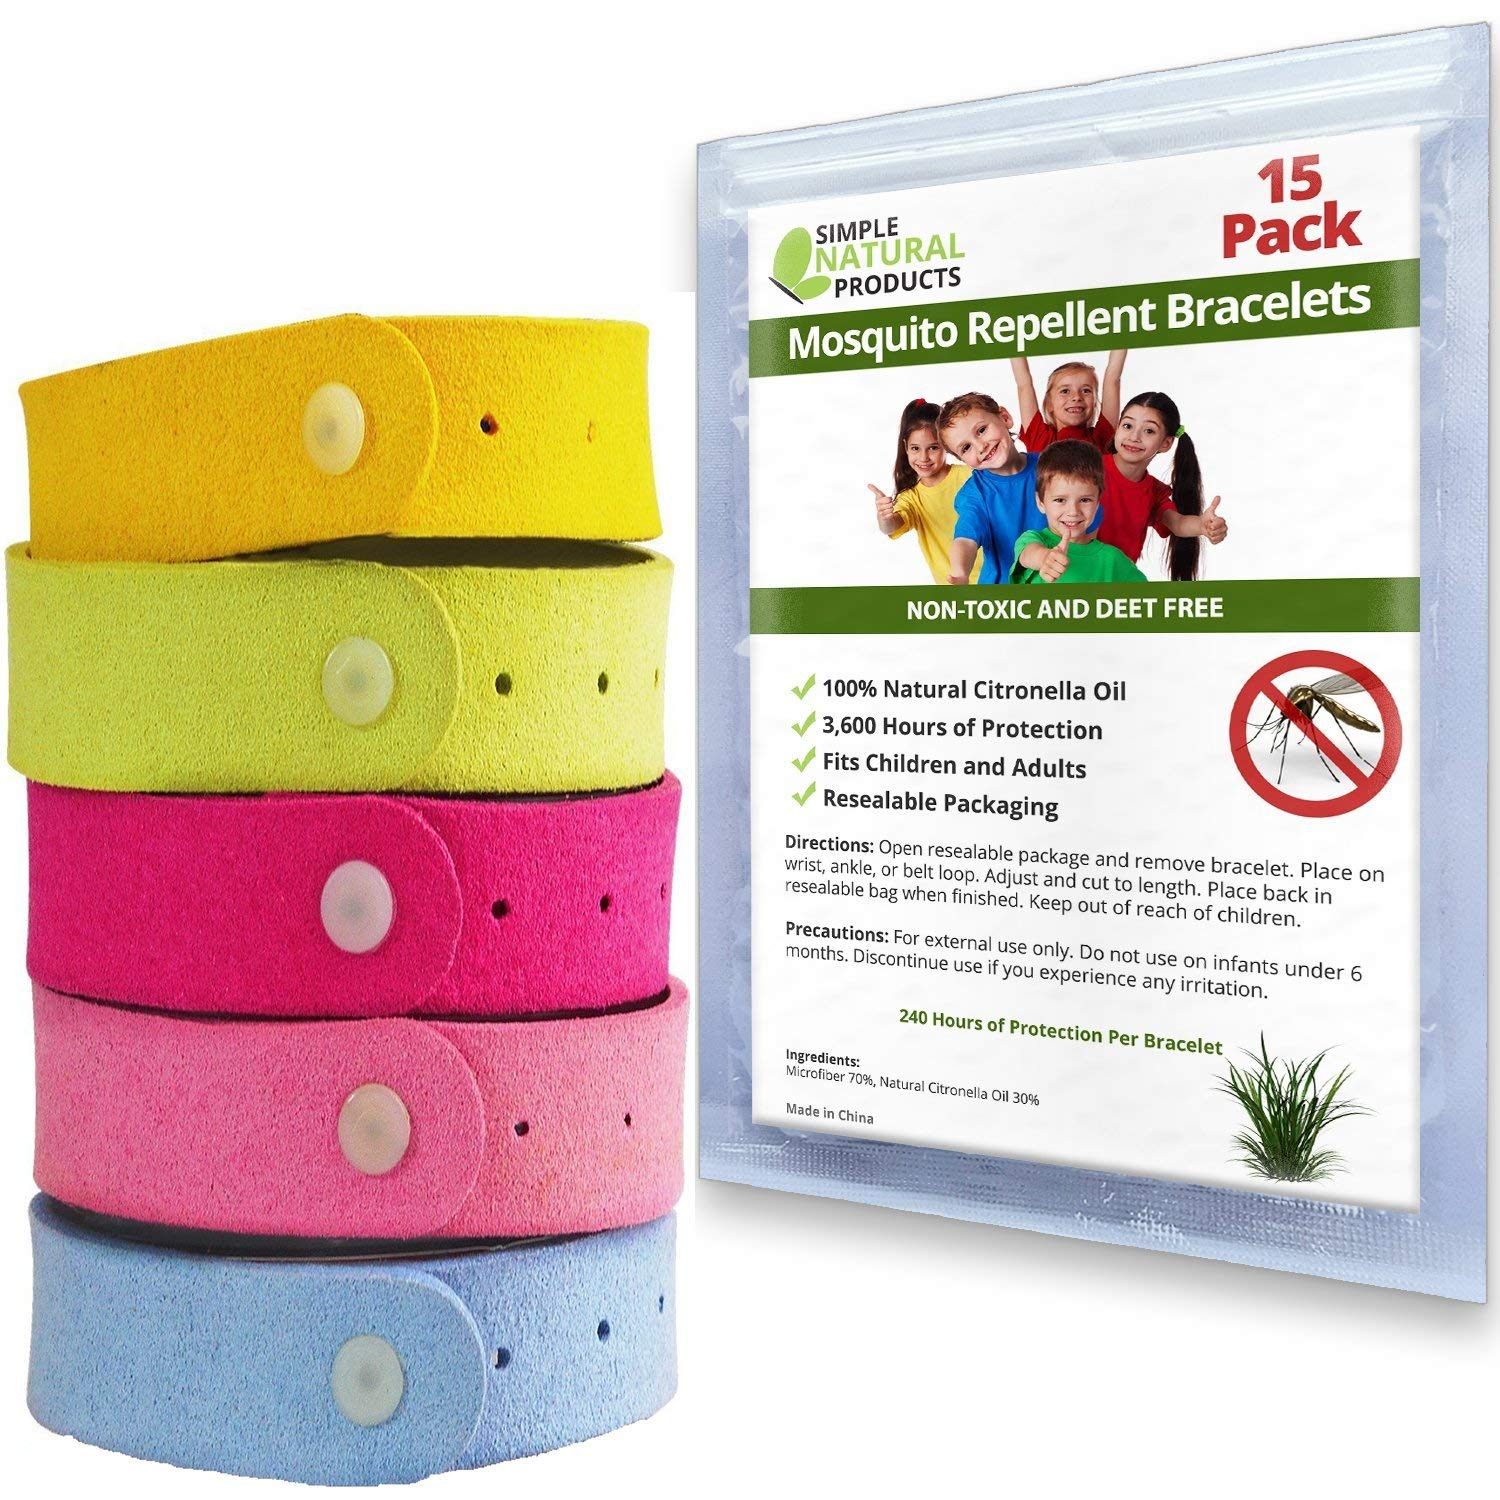 Mosquito Repellent Bracelet by Simple Natural Products